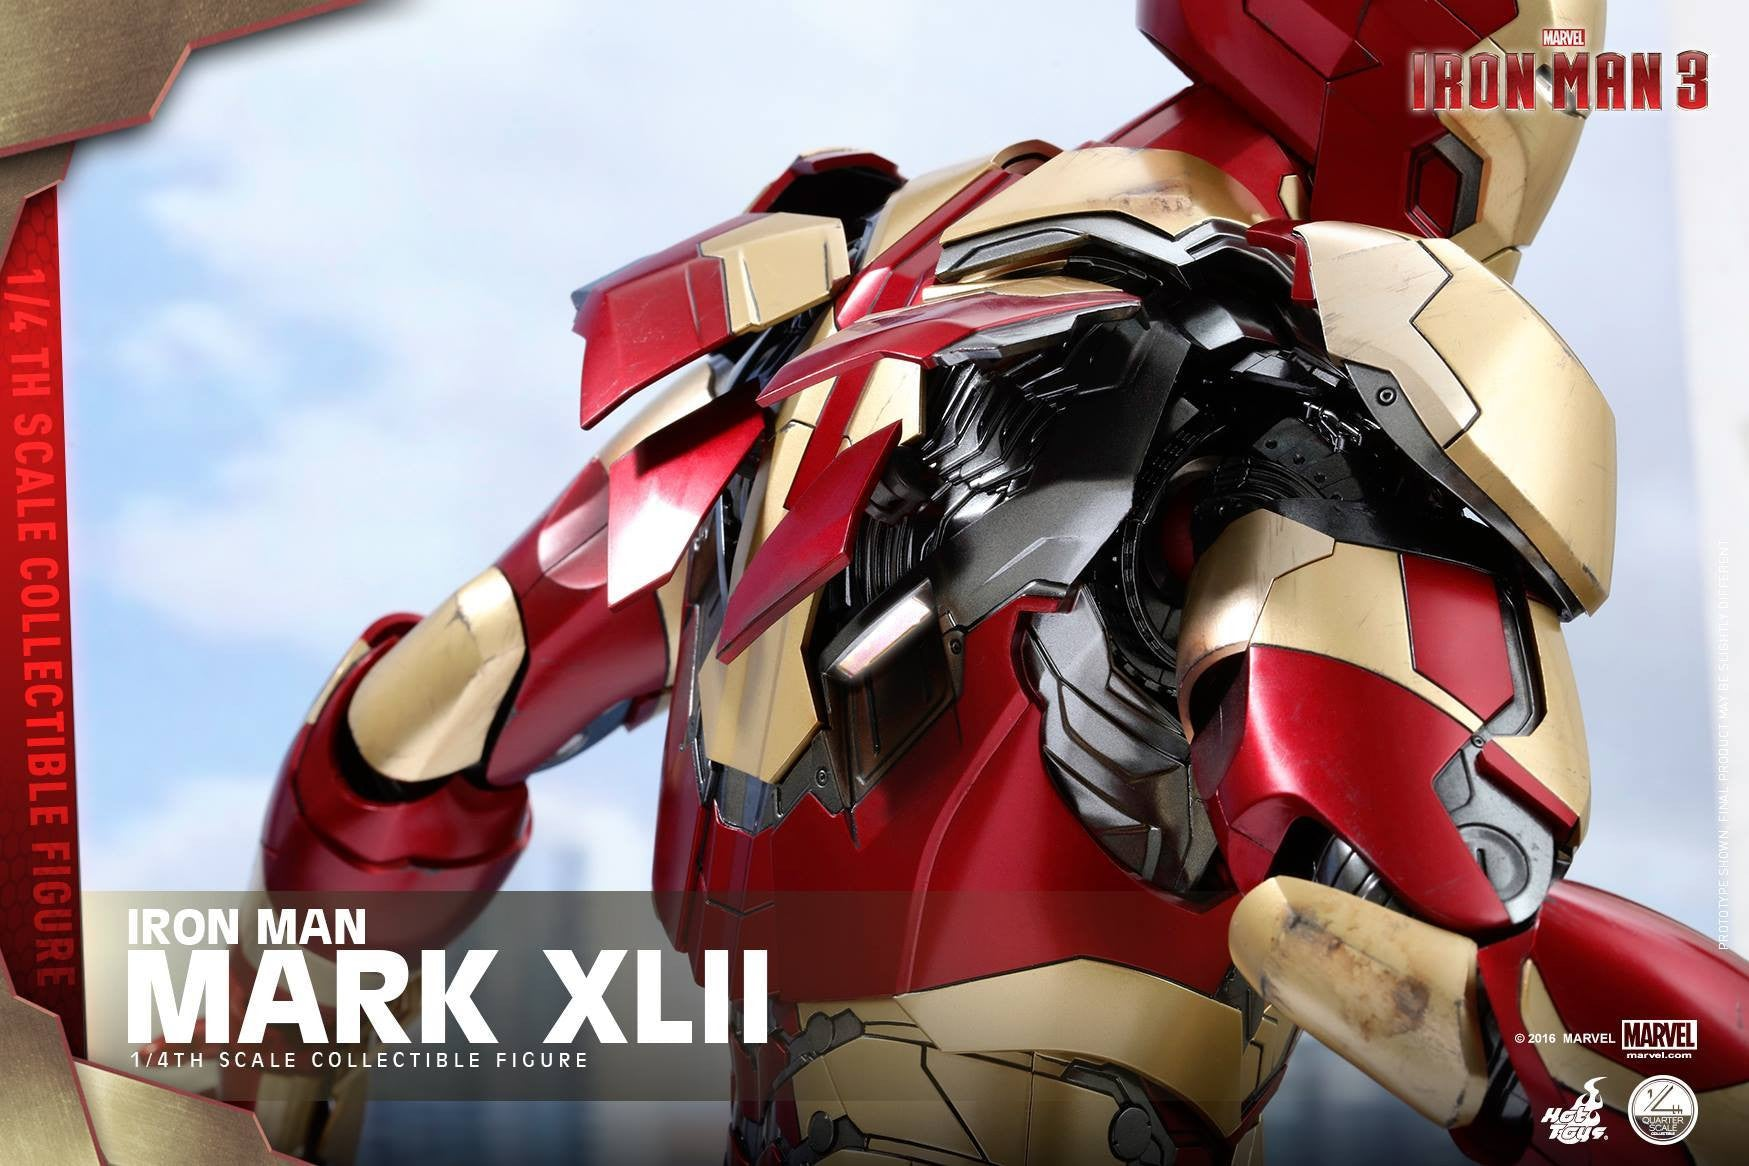 Hot Toys - QS007 - Iron Man 3 - 1/4th scale Mark XLII - Marvelous Toys - 14